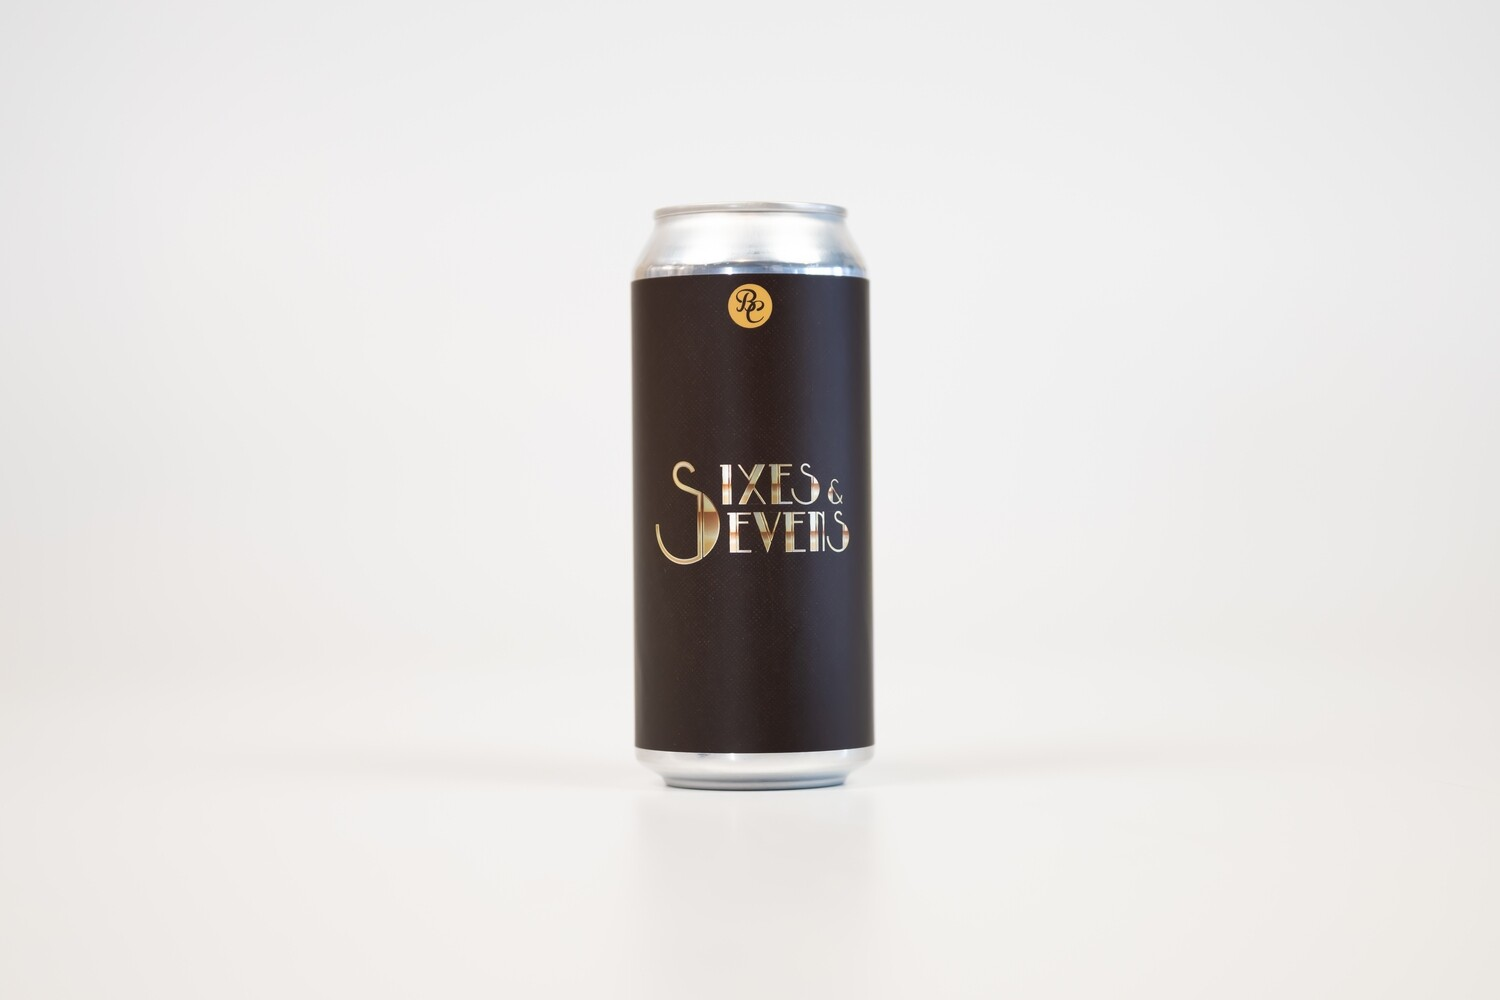 Sixes & Sevens 16oz Cans - 4pk